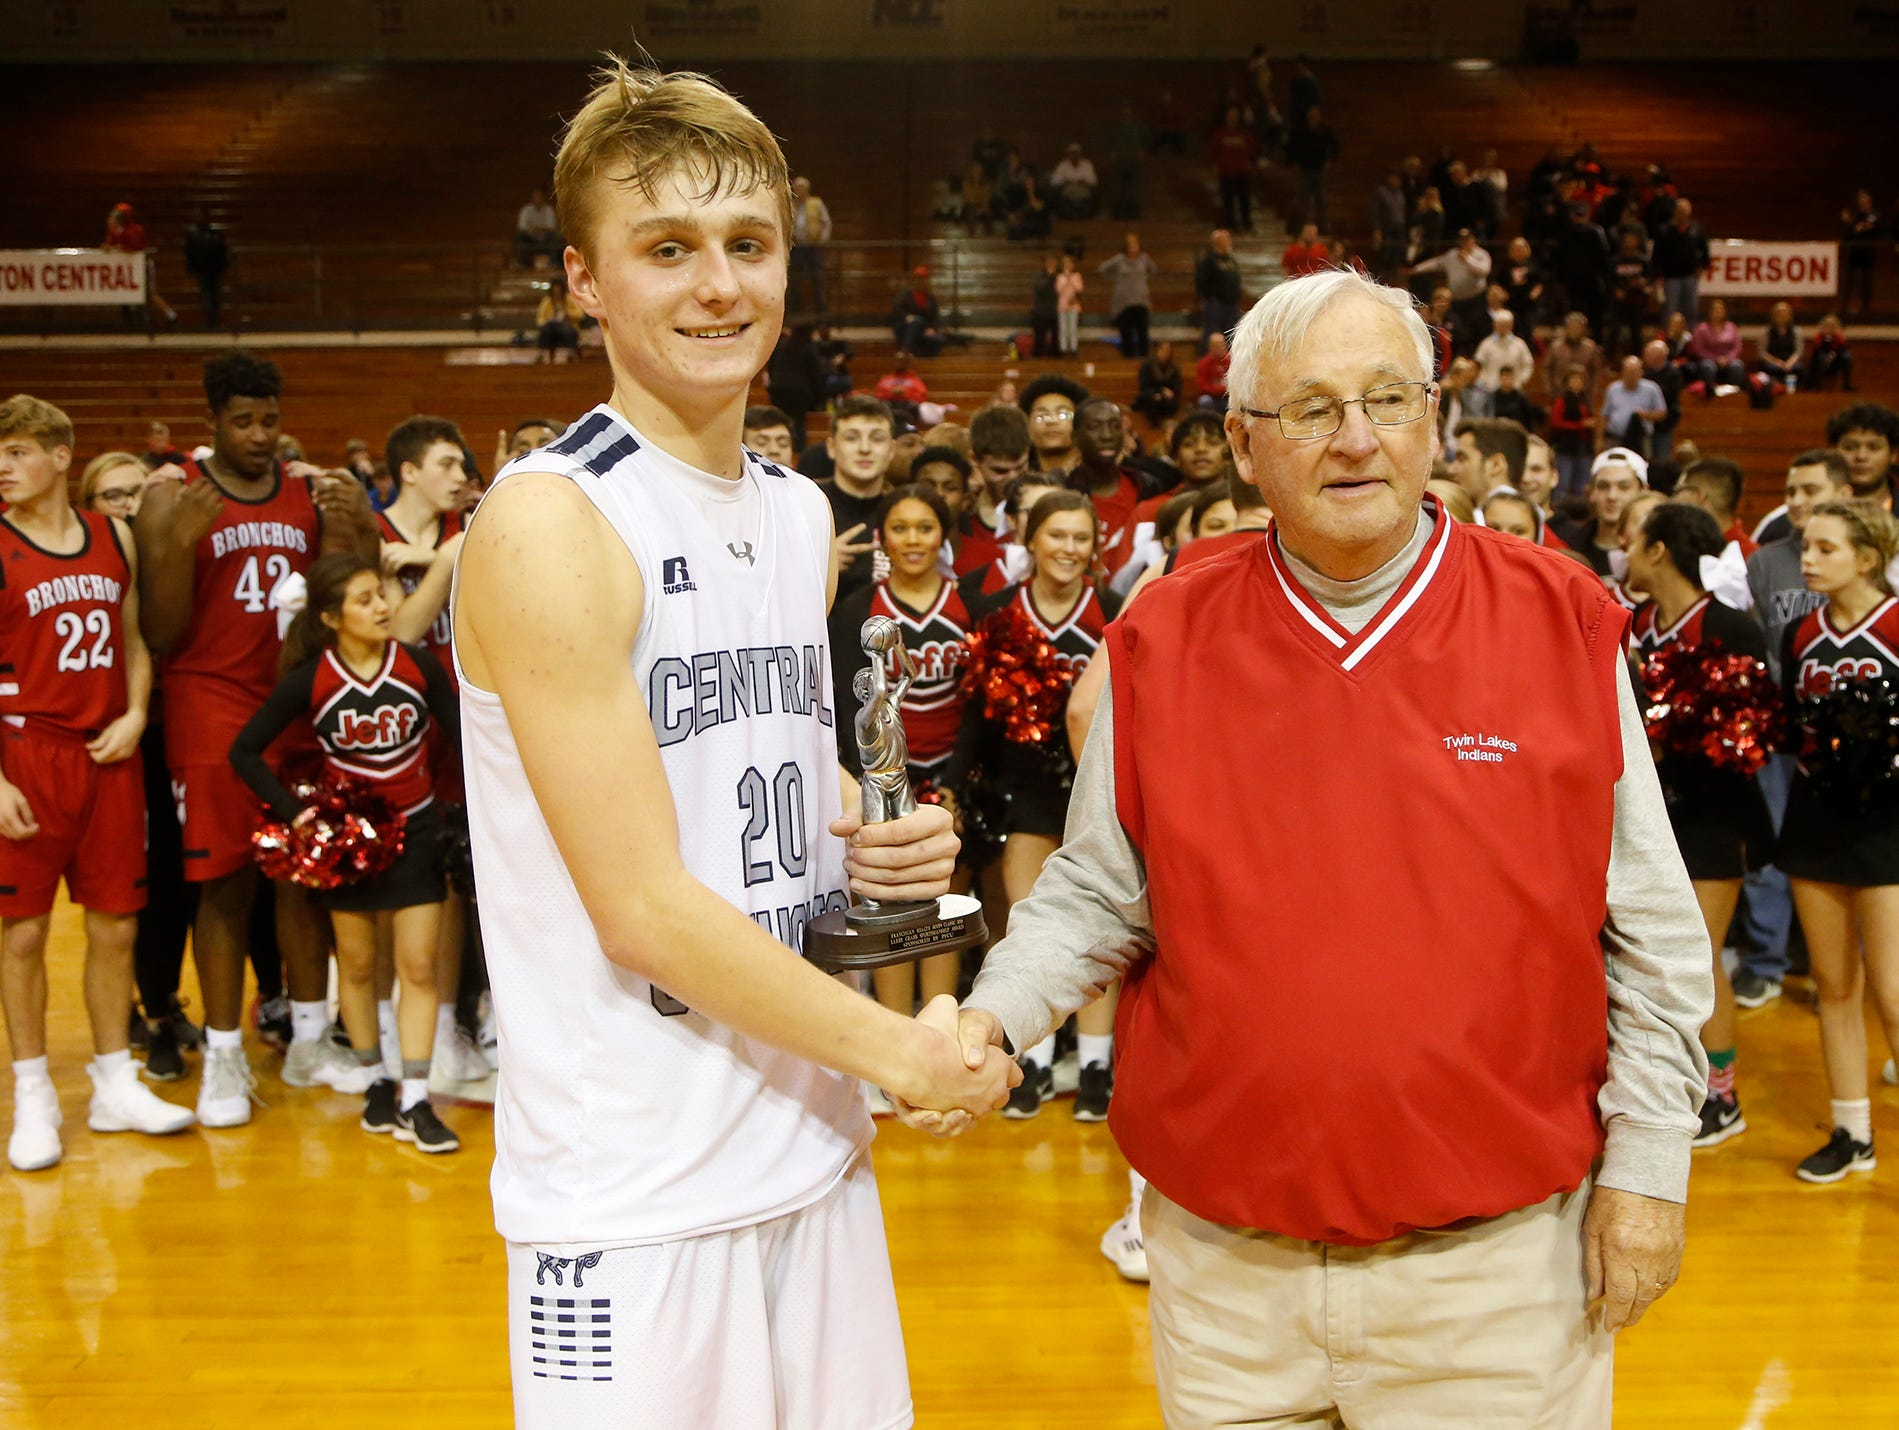 David Schwartz of Central Catholic is presented with the Larry Crabb Sportsmanship Award following the championship of the Franciscan Health Hoops Classic Saturday, December 1, 2018, at Lafayette Jeff. Lafayette Jeff defeated Central Catholic 76-73 for the title.